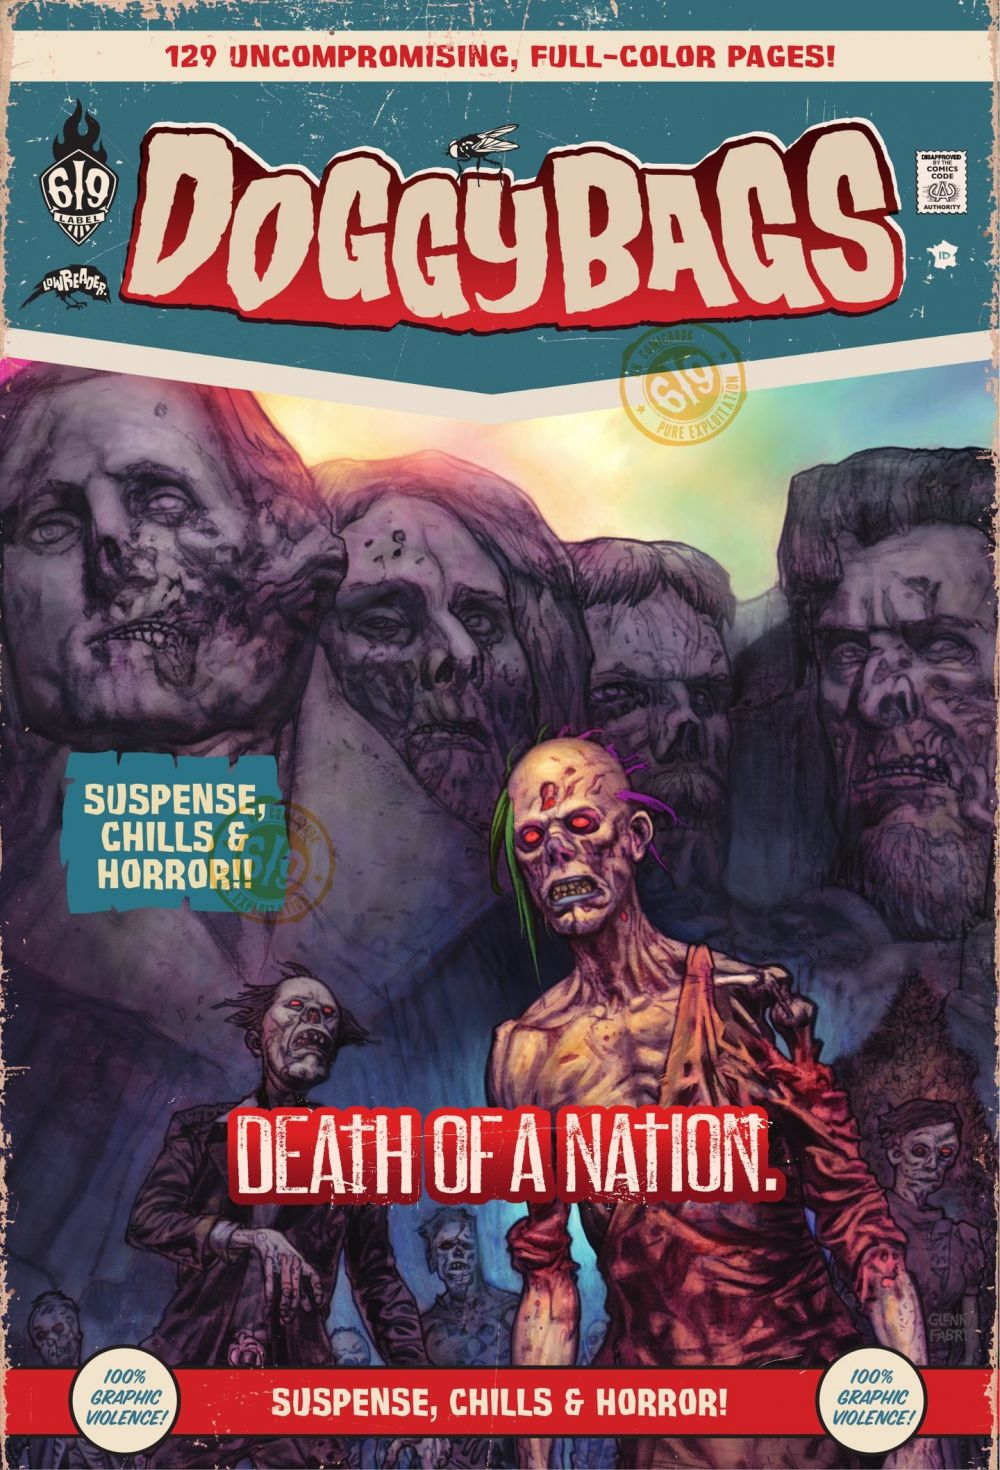 Doggybags - Death of a nation